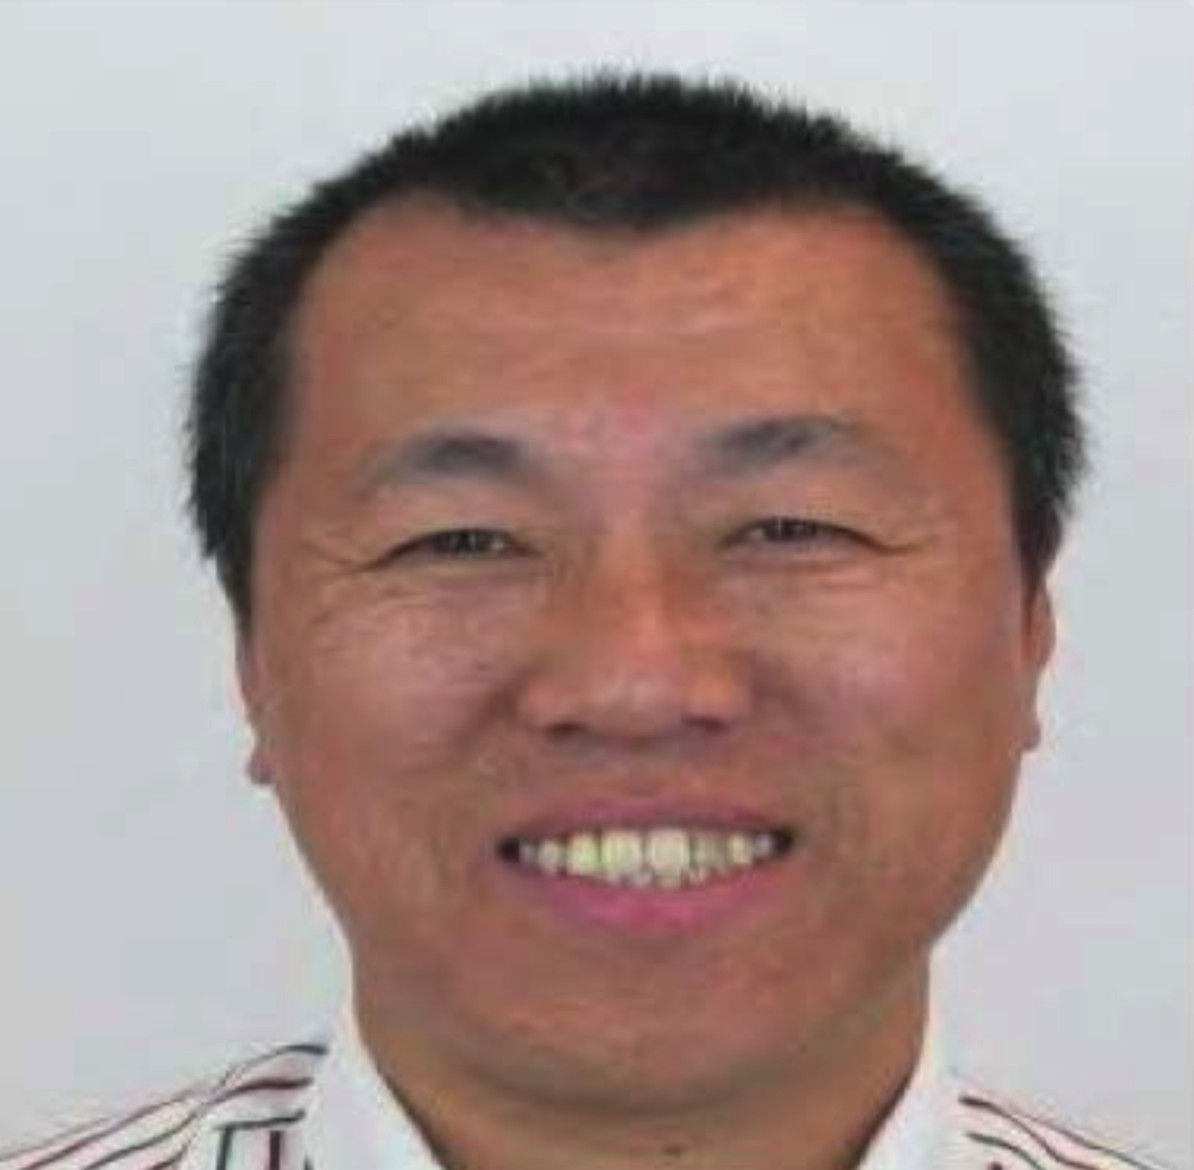 Xianbing Gan was sentenced in April to 14 years in prison for laundering Mexican drug cartel cash.